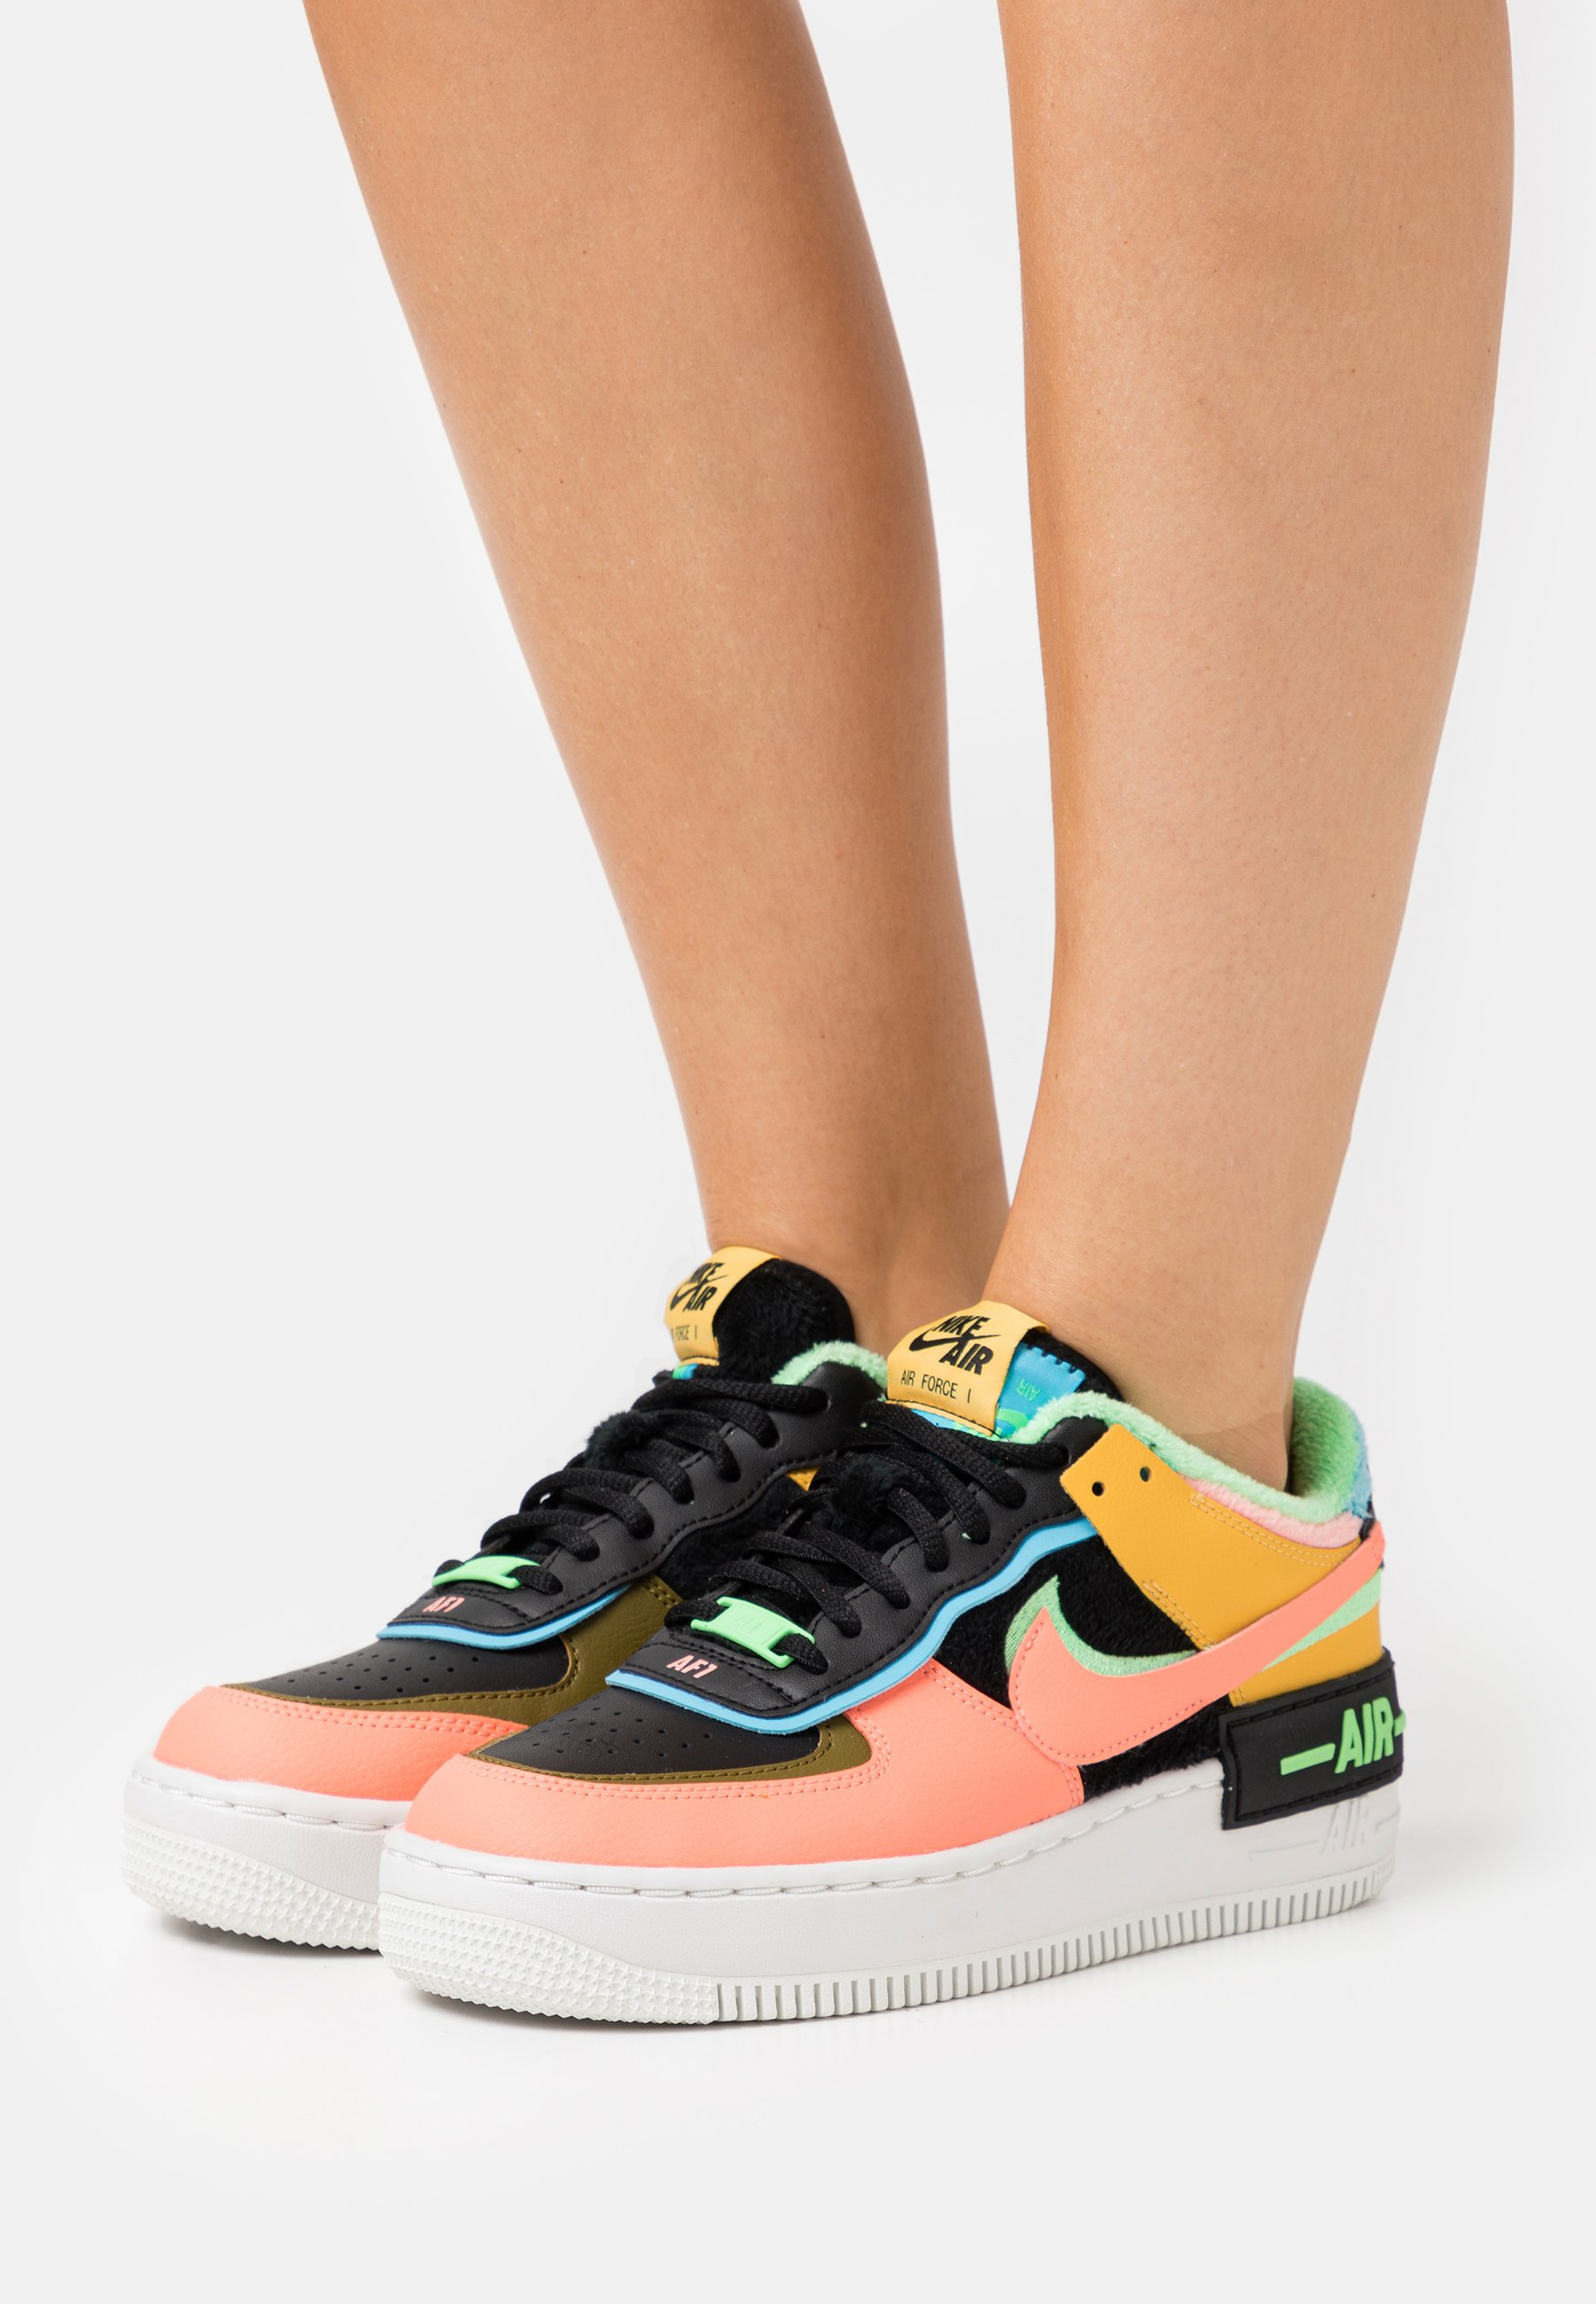 Nike Sportswear Air Force 1 Shadow Trainers Solar Flare Atomic Pink Baltic Blue Black Illusion Green Olive Flak Black Zalando Co Uk Nike women's air force 1 shadow casual shoes. air force 1 shadow trainers solar flare atomic pink baltic blue black illusion green olive flak